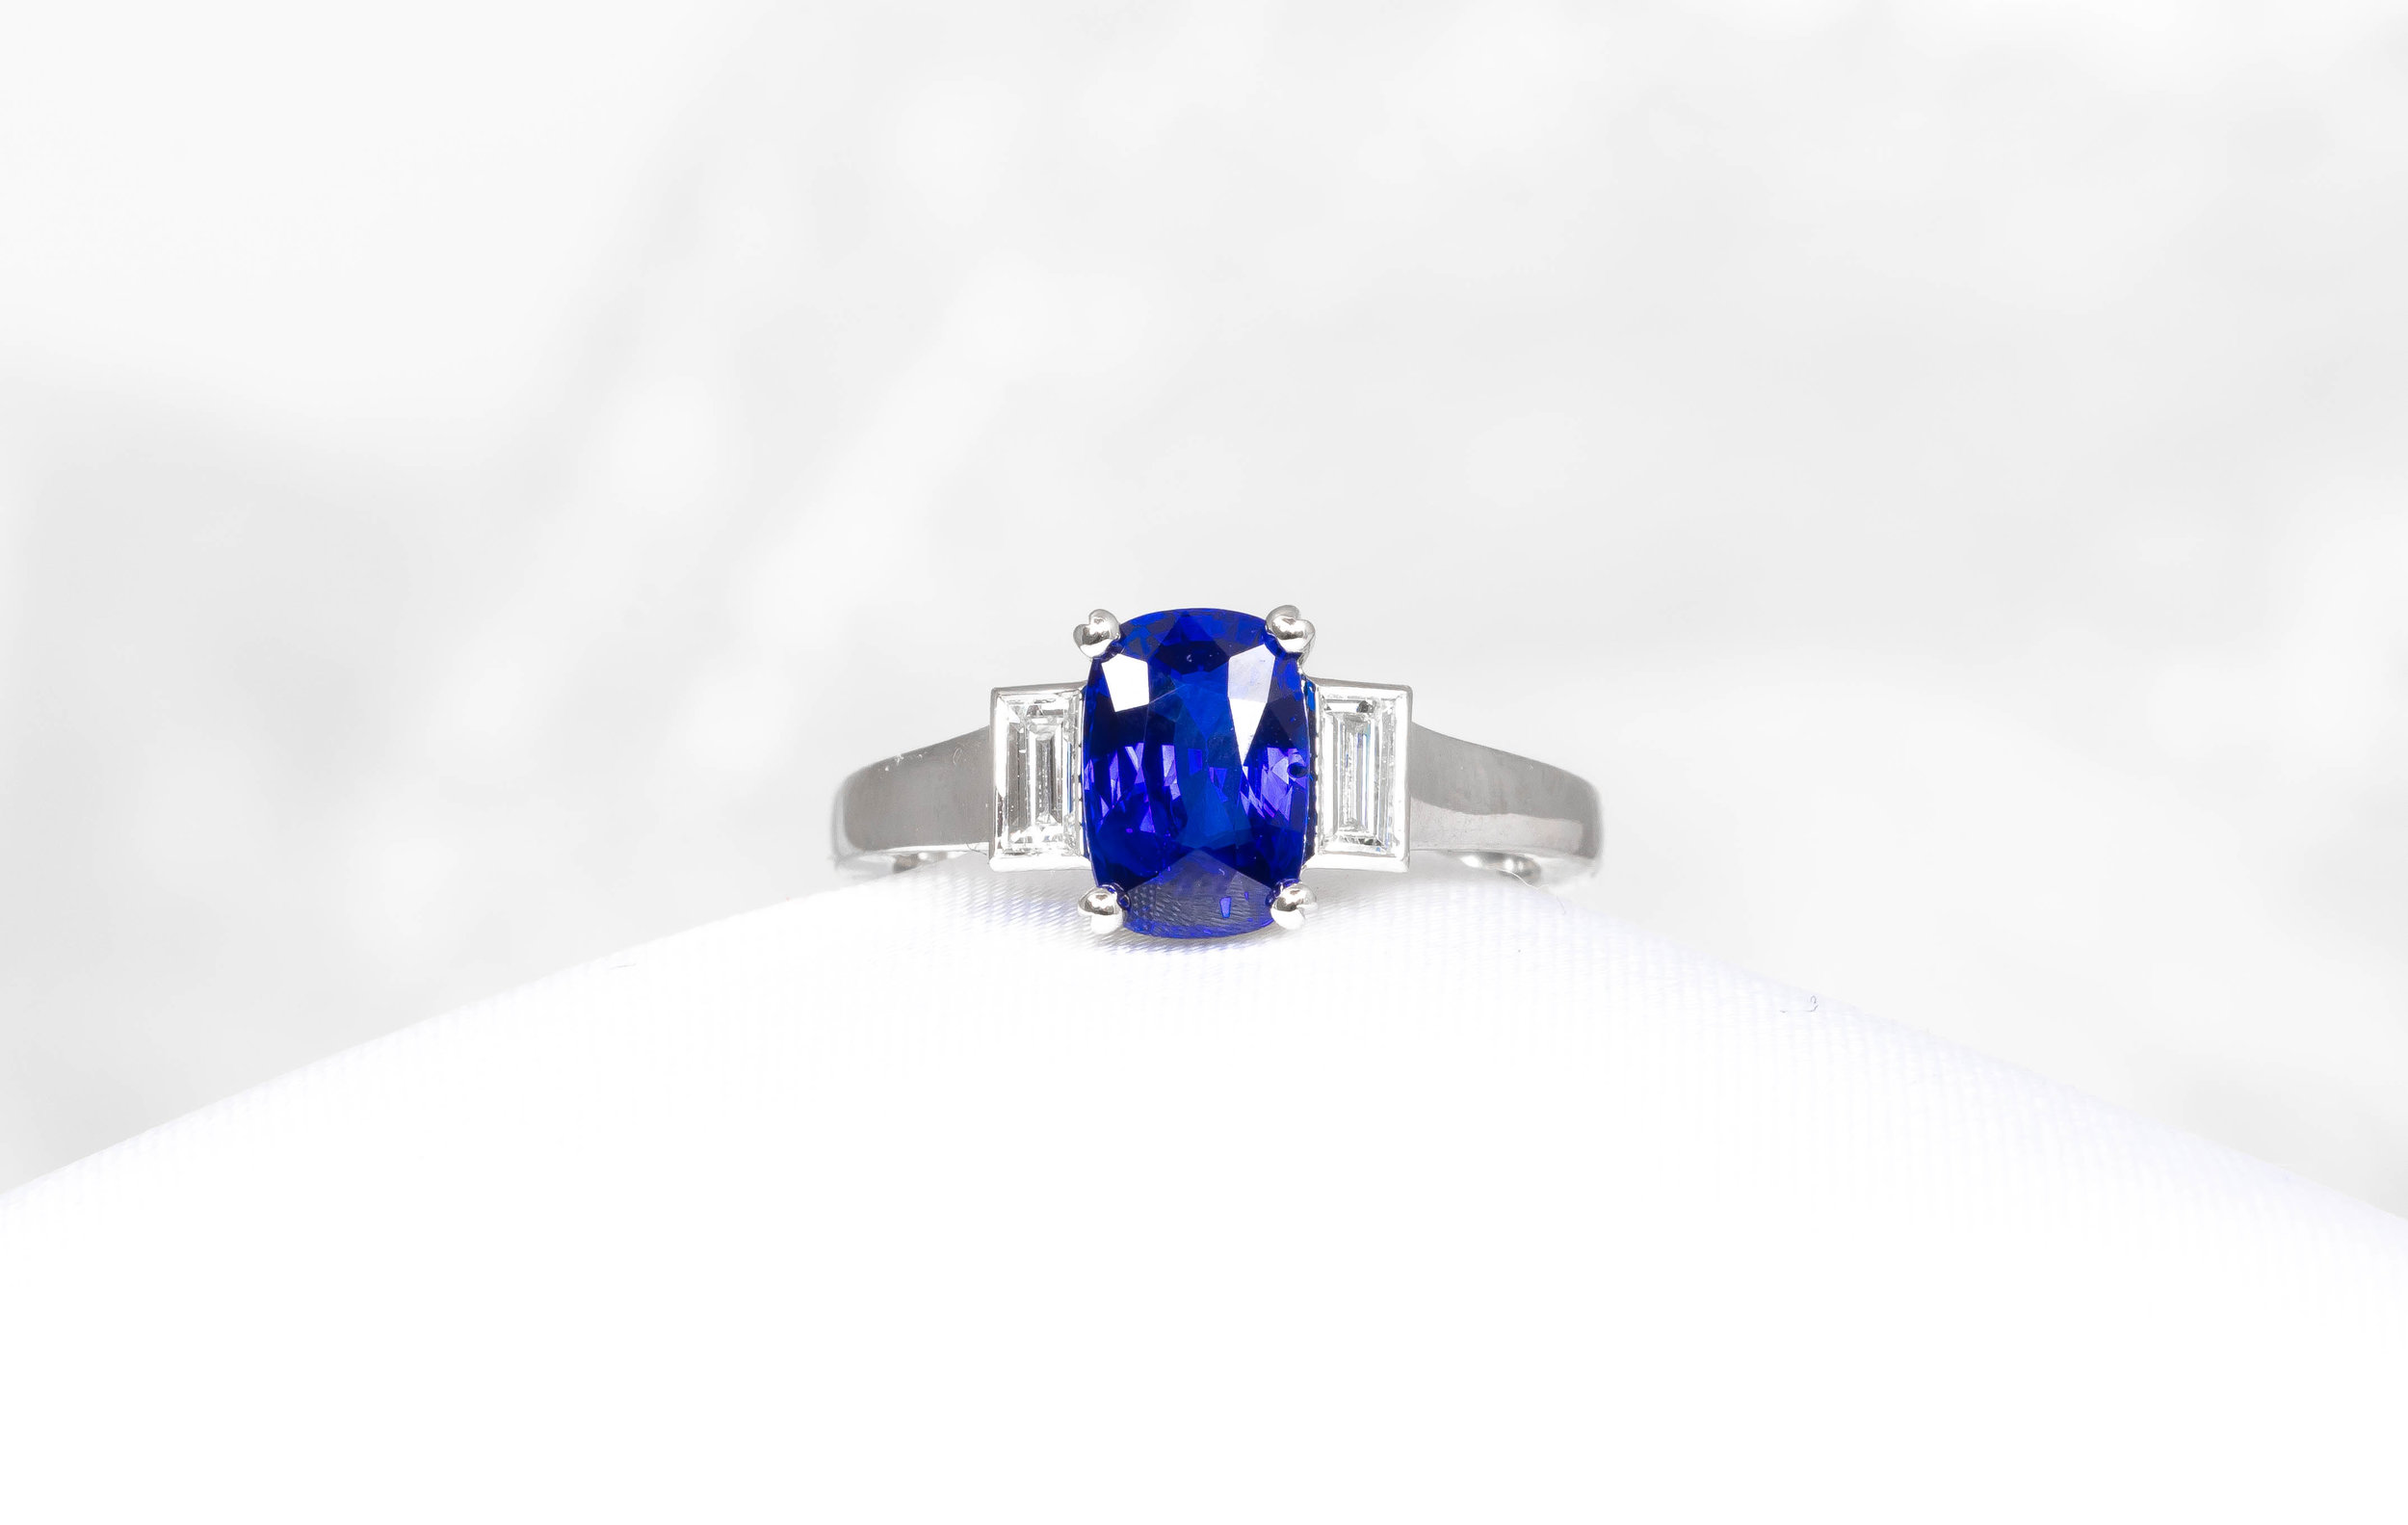 Platinum mounted oblong cushion cut Sri Lankan sapphire and baguette diamond set 3 stone ring. Made in Chichester, England.